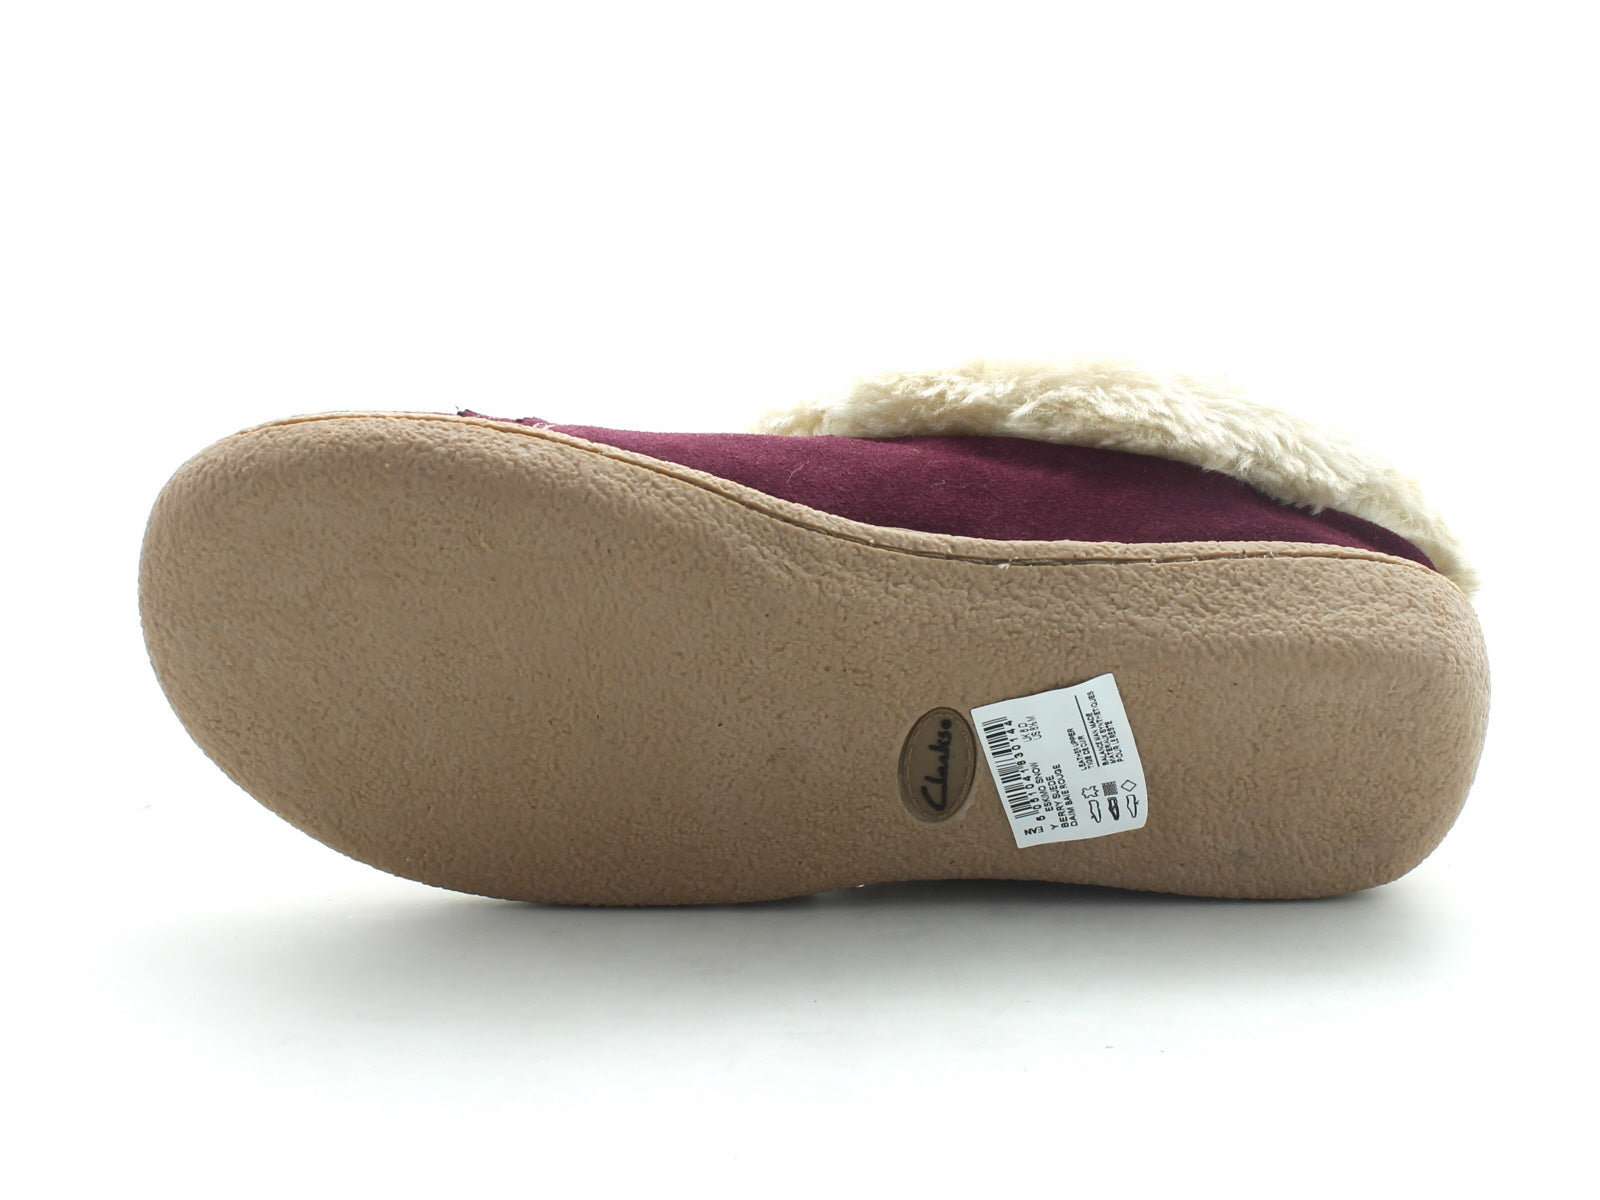 Clarks Eskimo Snow in Berry Suede sole view